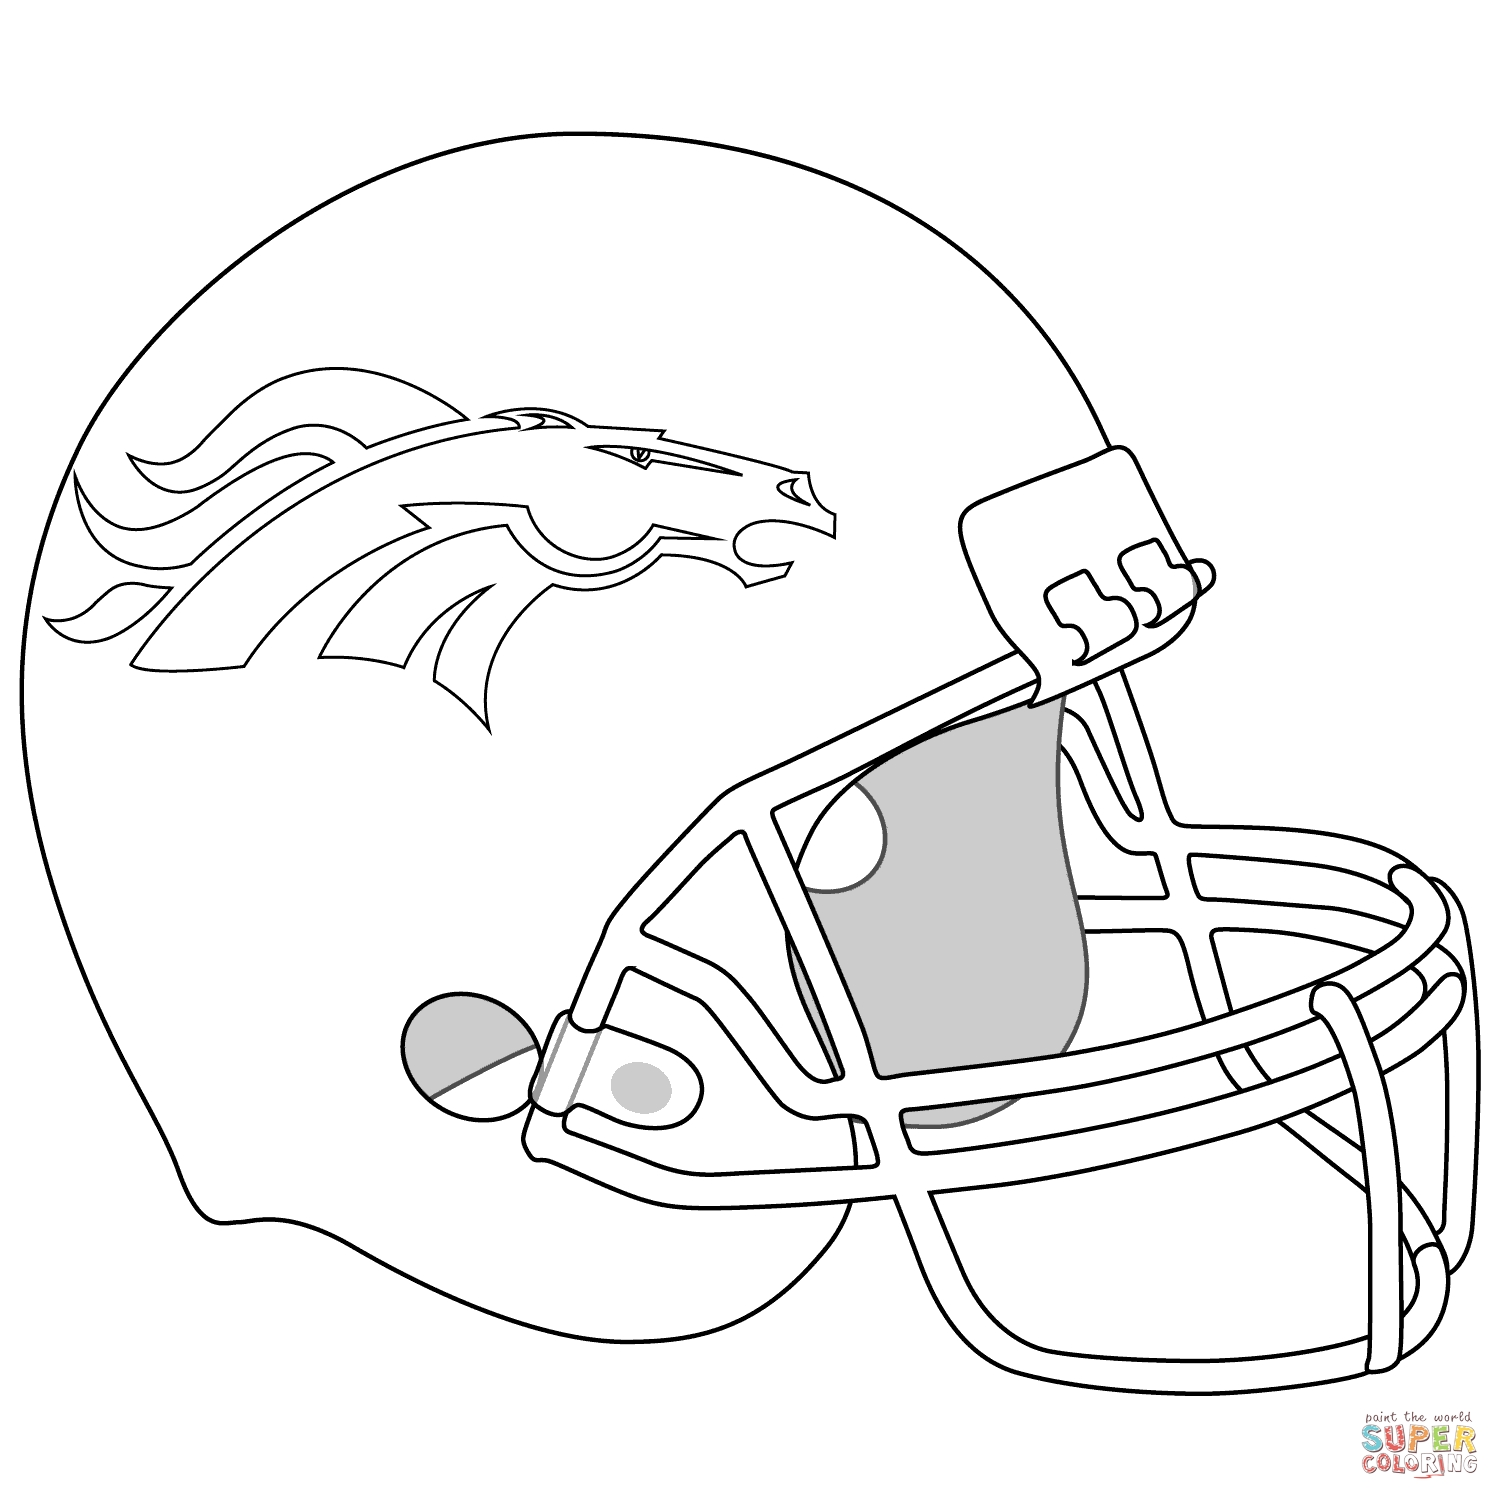 football helmets to color get this free printable football helmet nfl coloring pages color helmets football to